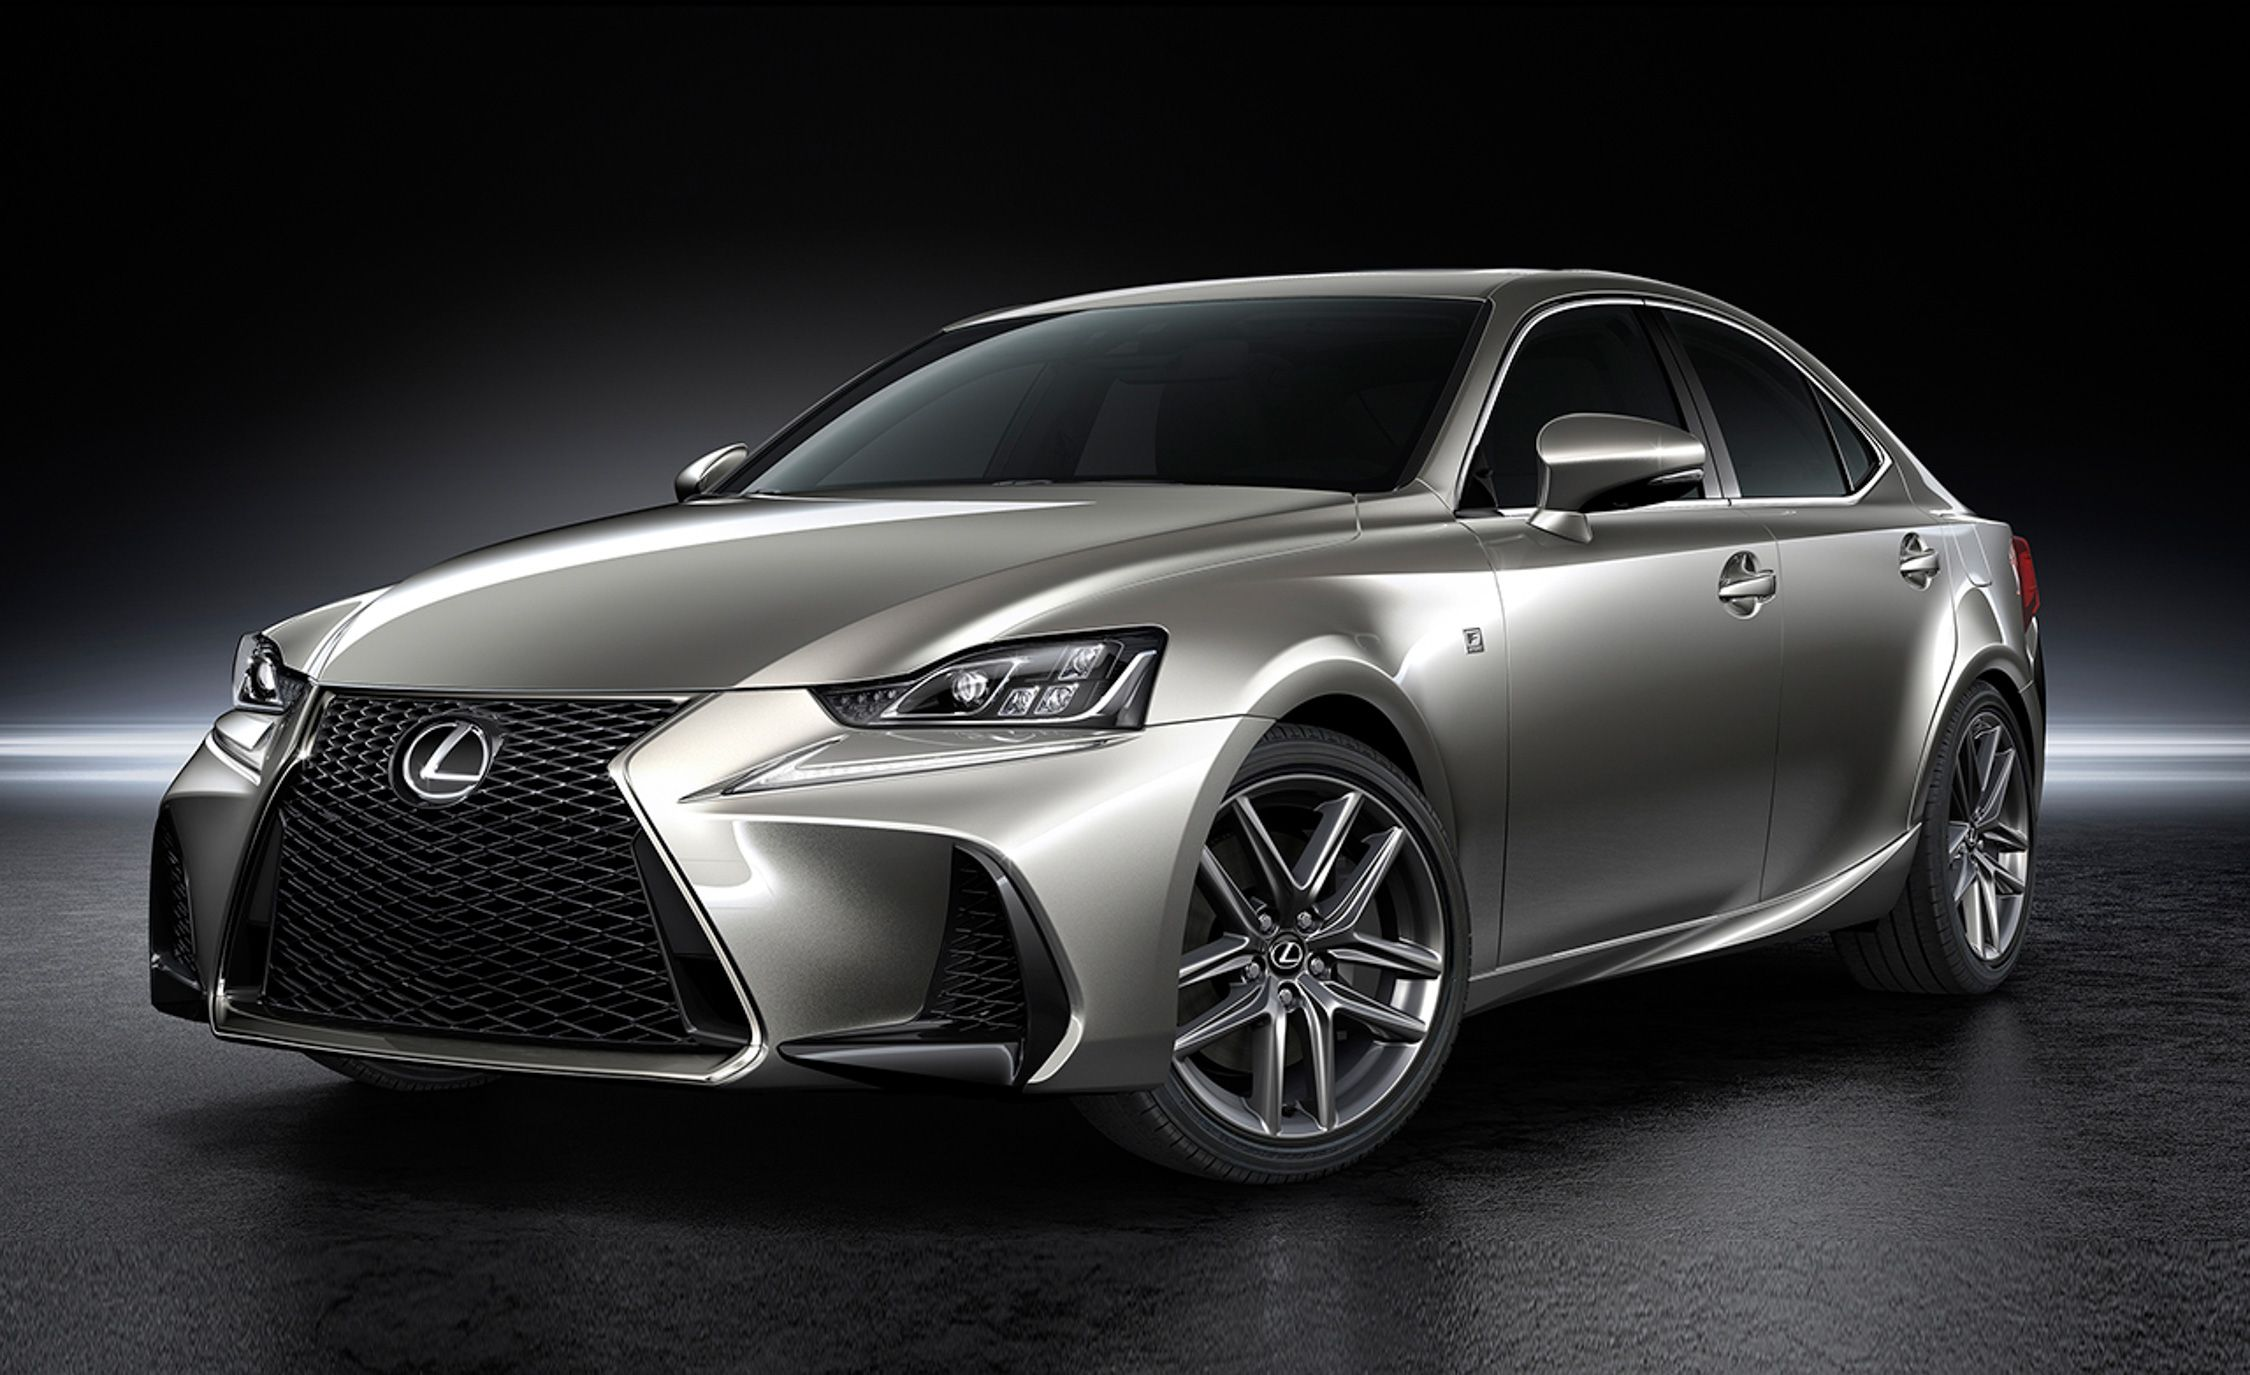 2017 Lexus IS 250 F sport, price, release date, convertible